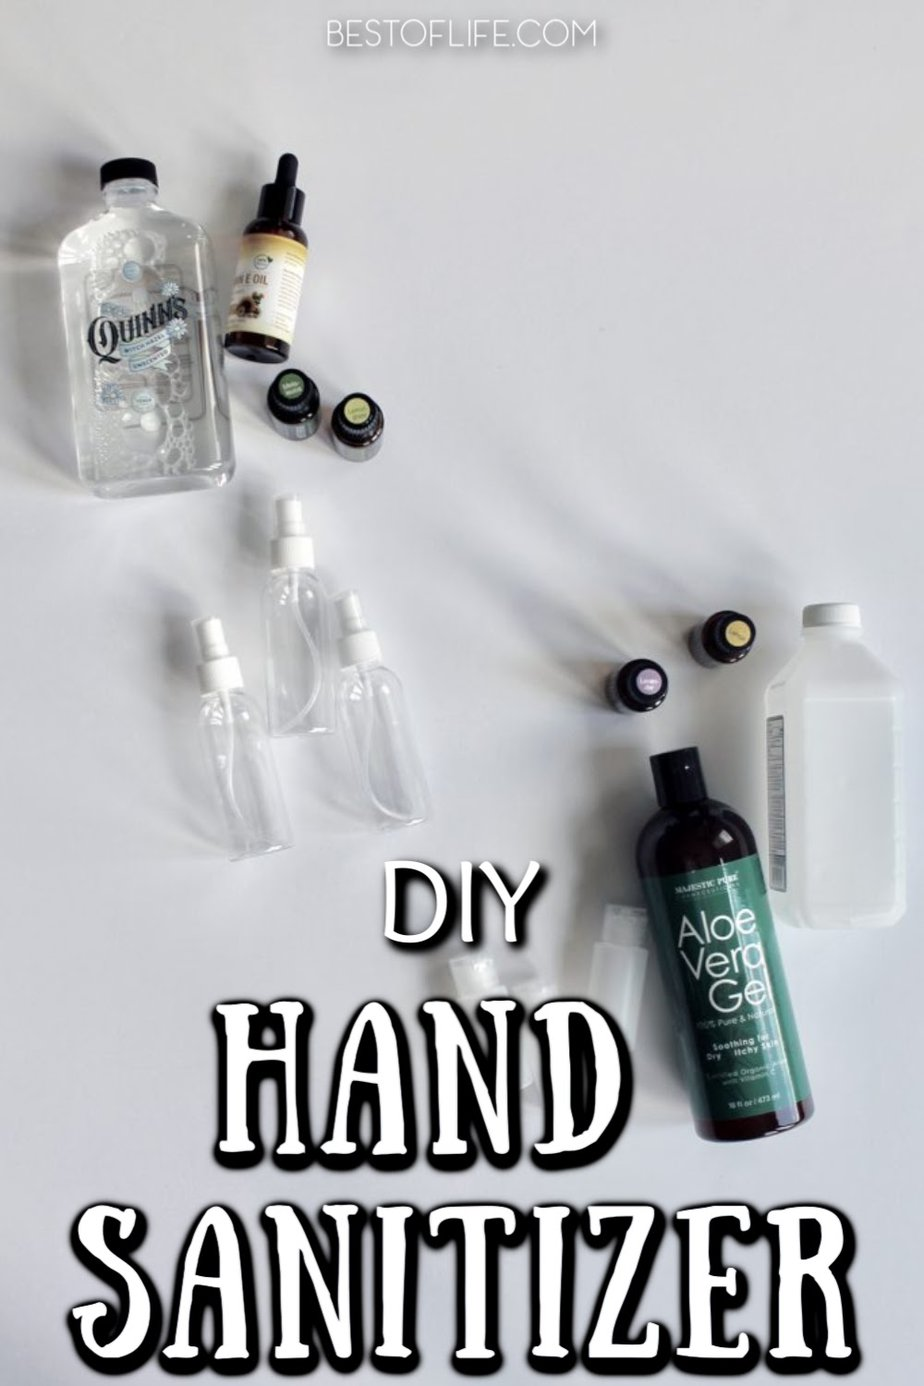 DIY hand sanitizer is not only easy to make, but it could also be the safest way to clean your hands and protect against germs. Hand Sanitizer Recipe with Alcohol | Hand Sanitizer Recipe with Essential Oils | Hand Sanitizer Recipe with Vodka | Hand Sanitizer Recipe Without Aloe | Healthy Living Tips | Tips for Health #health #DIY